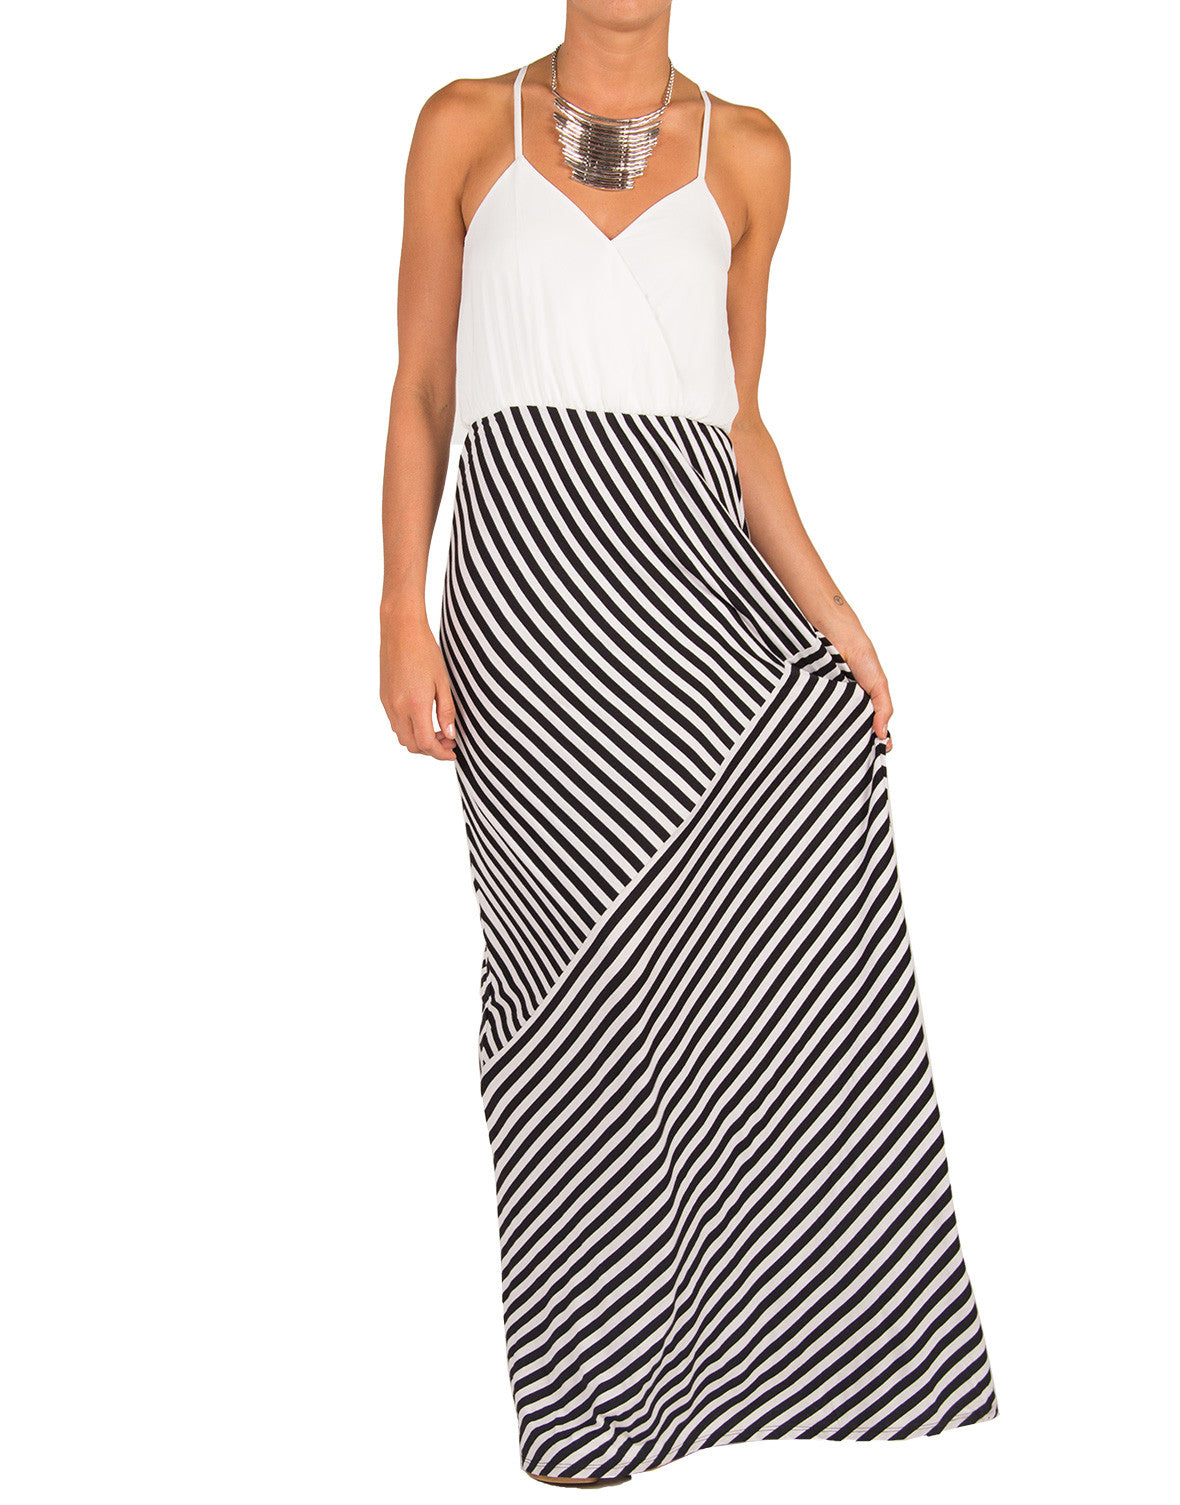 Chiffon Mix Striped Maxi Dress